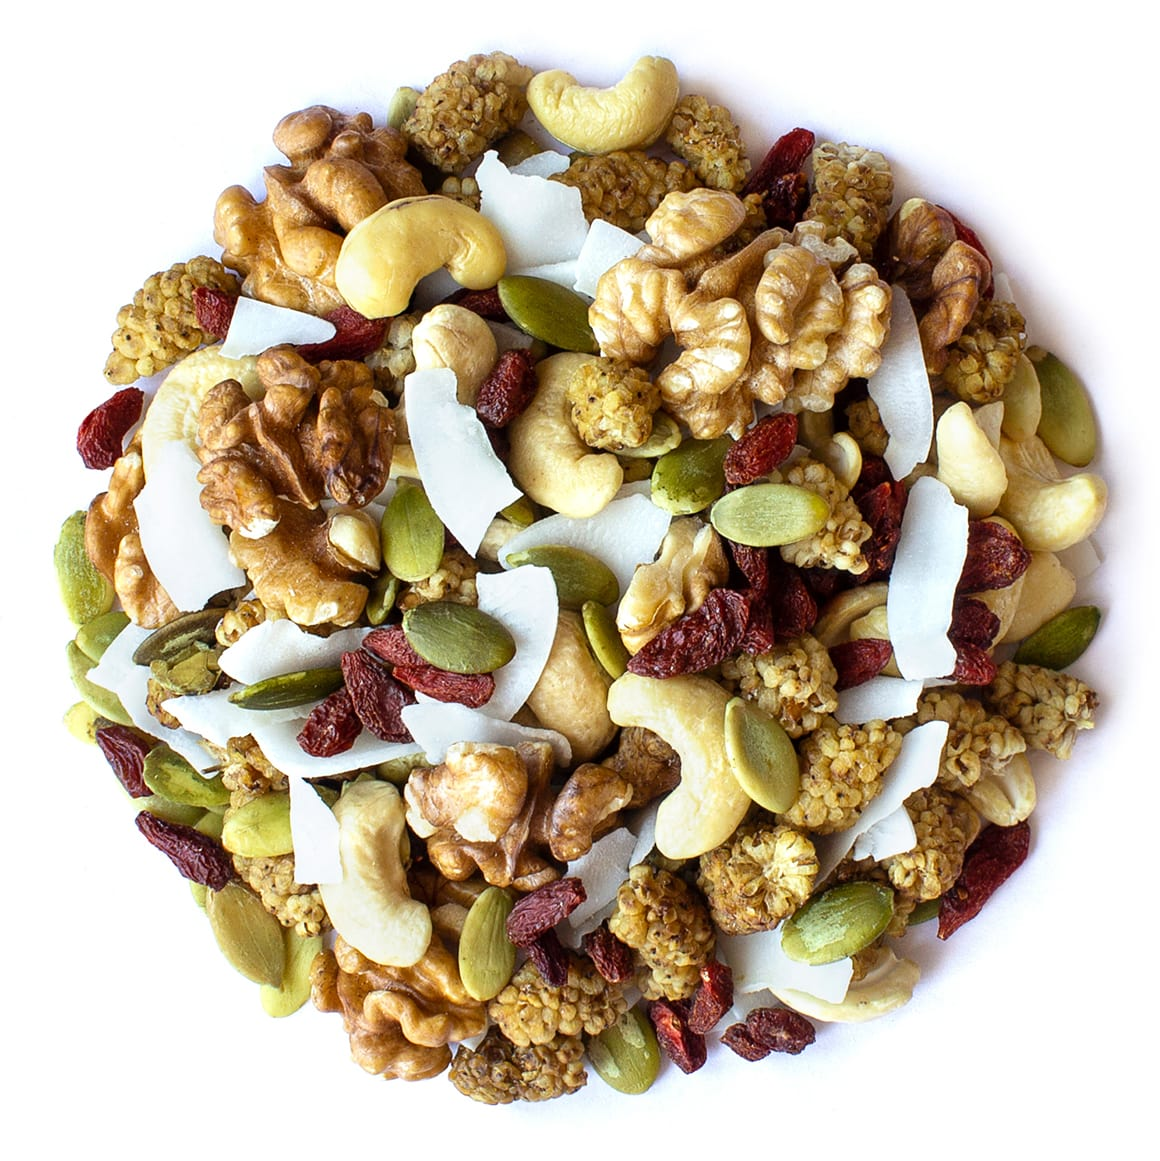 Variety Trail Mix